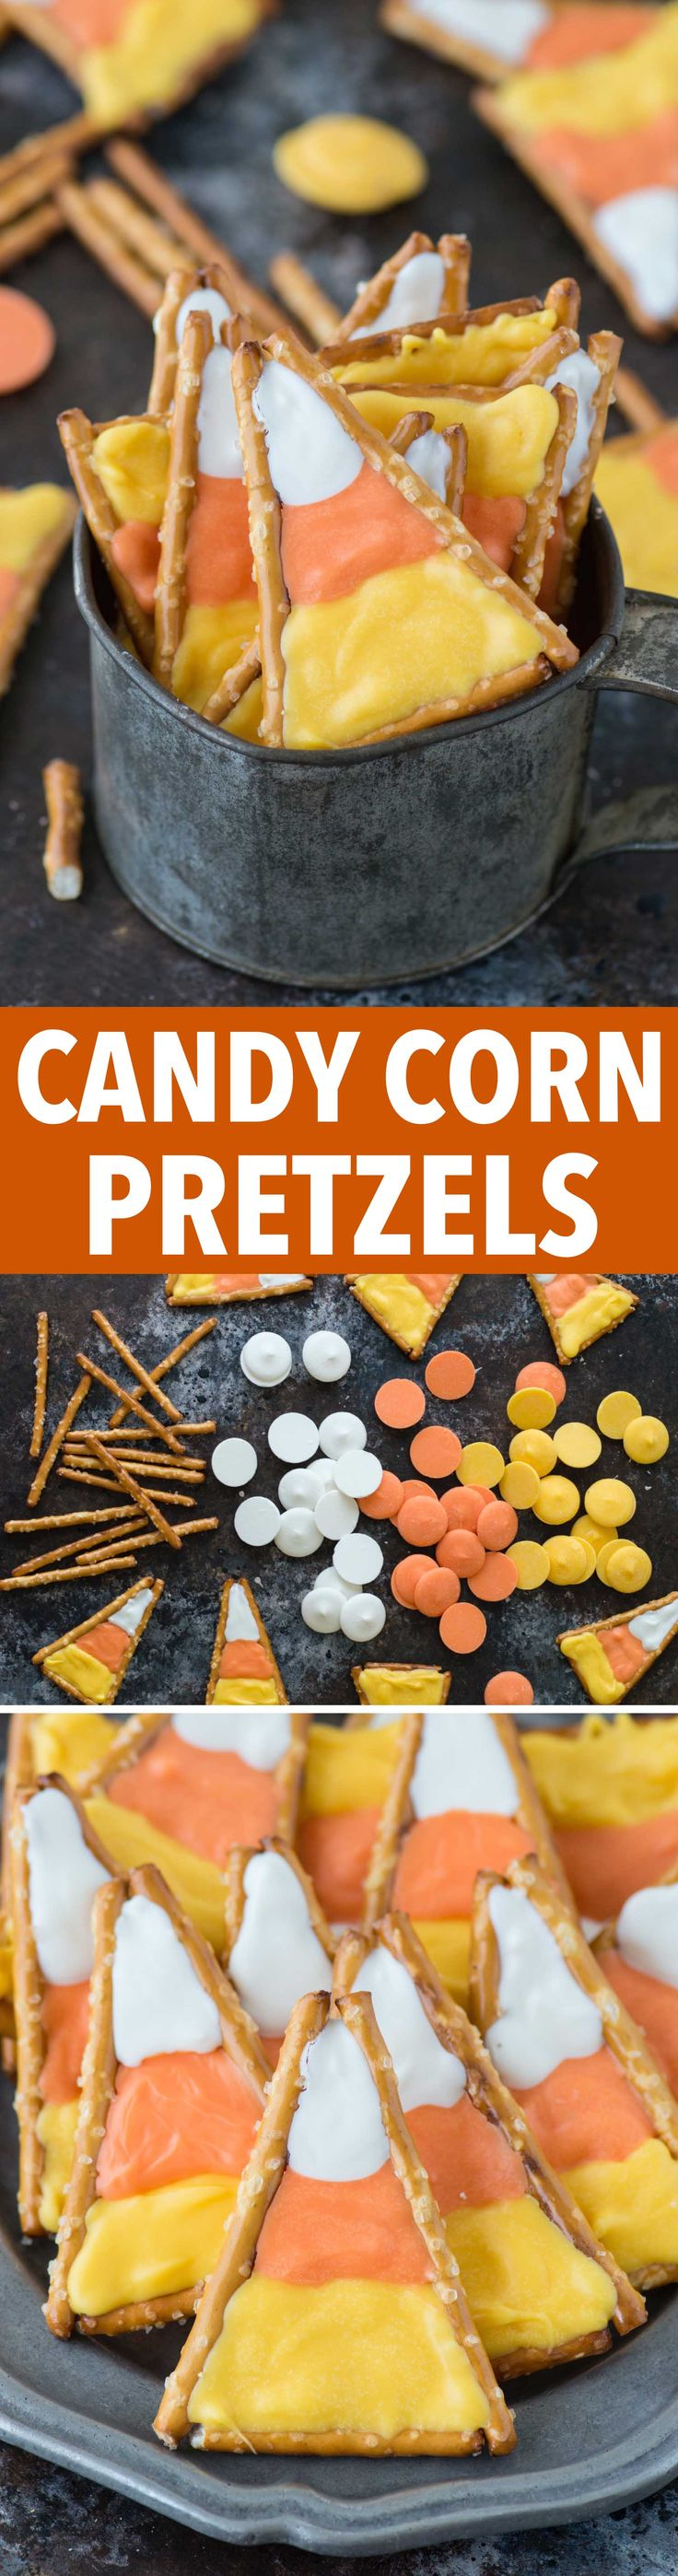 Best 25+ Halloween pretzels ideas on Pinterest | Halloween snacks ...